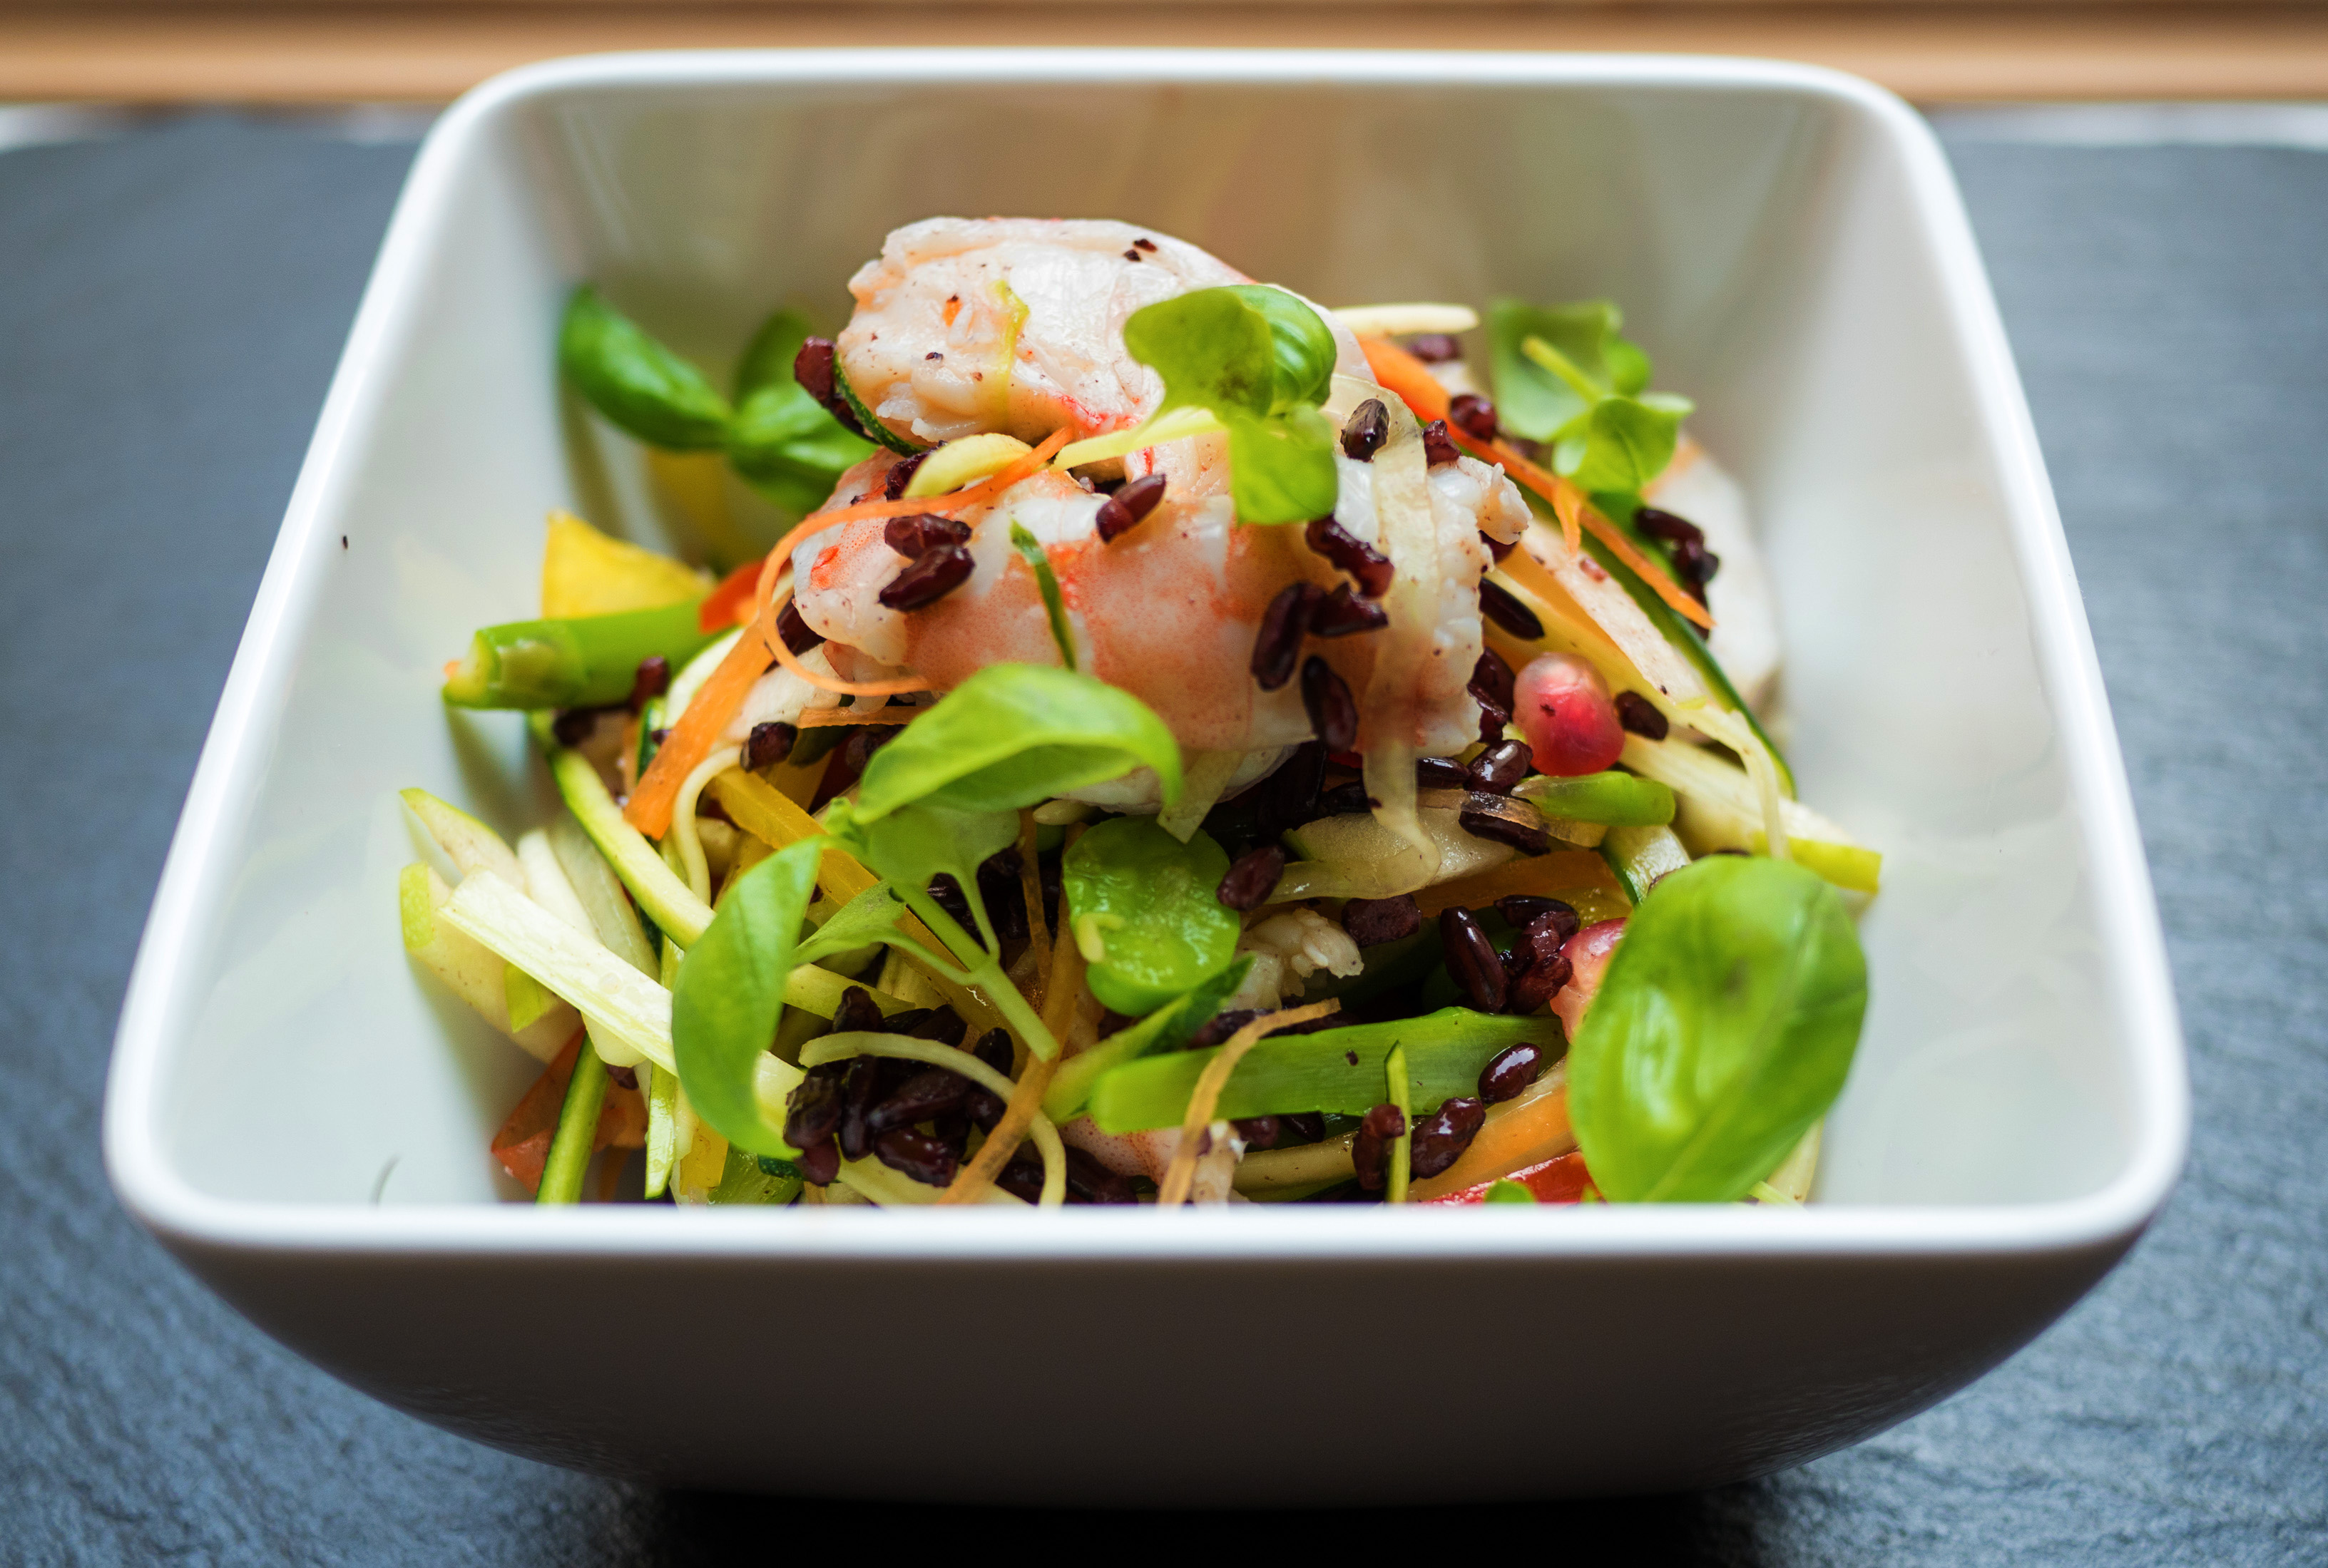 Recipe of the Week: Venere Rice Prawn Salad by Doppiozero